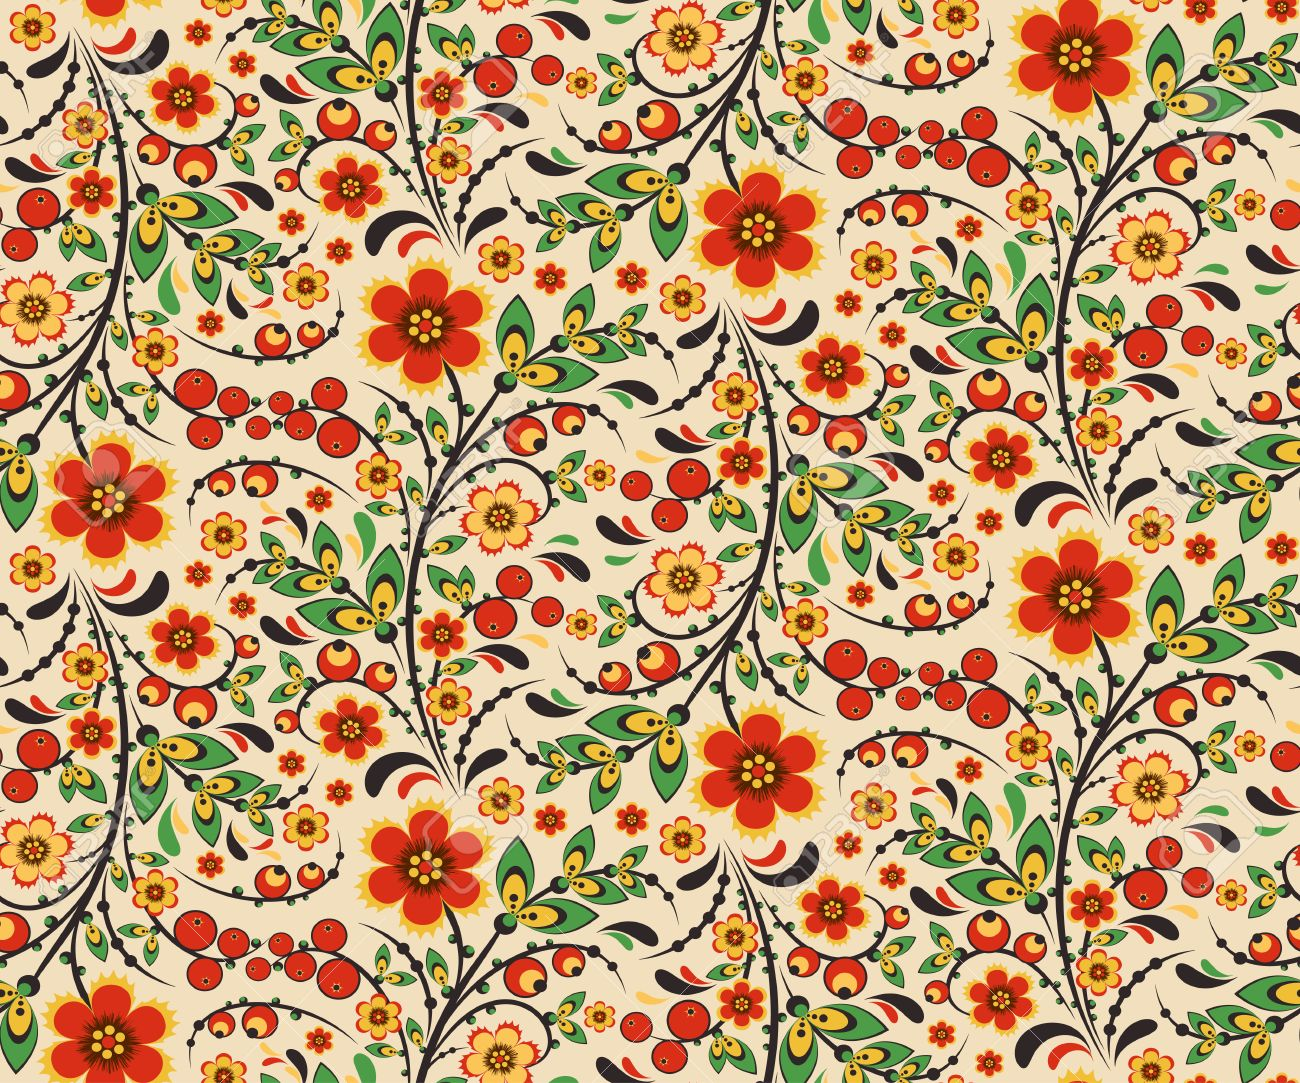 Seamless Floral Pattern With Ornamental Flowers In Khokhloma